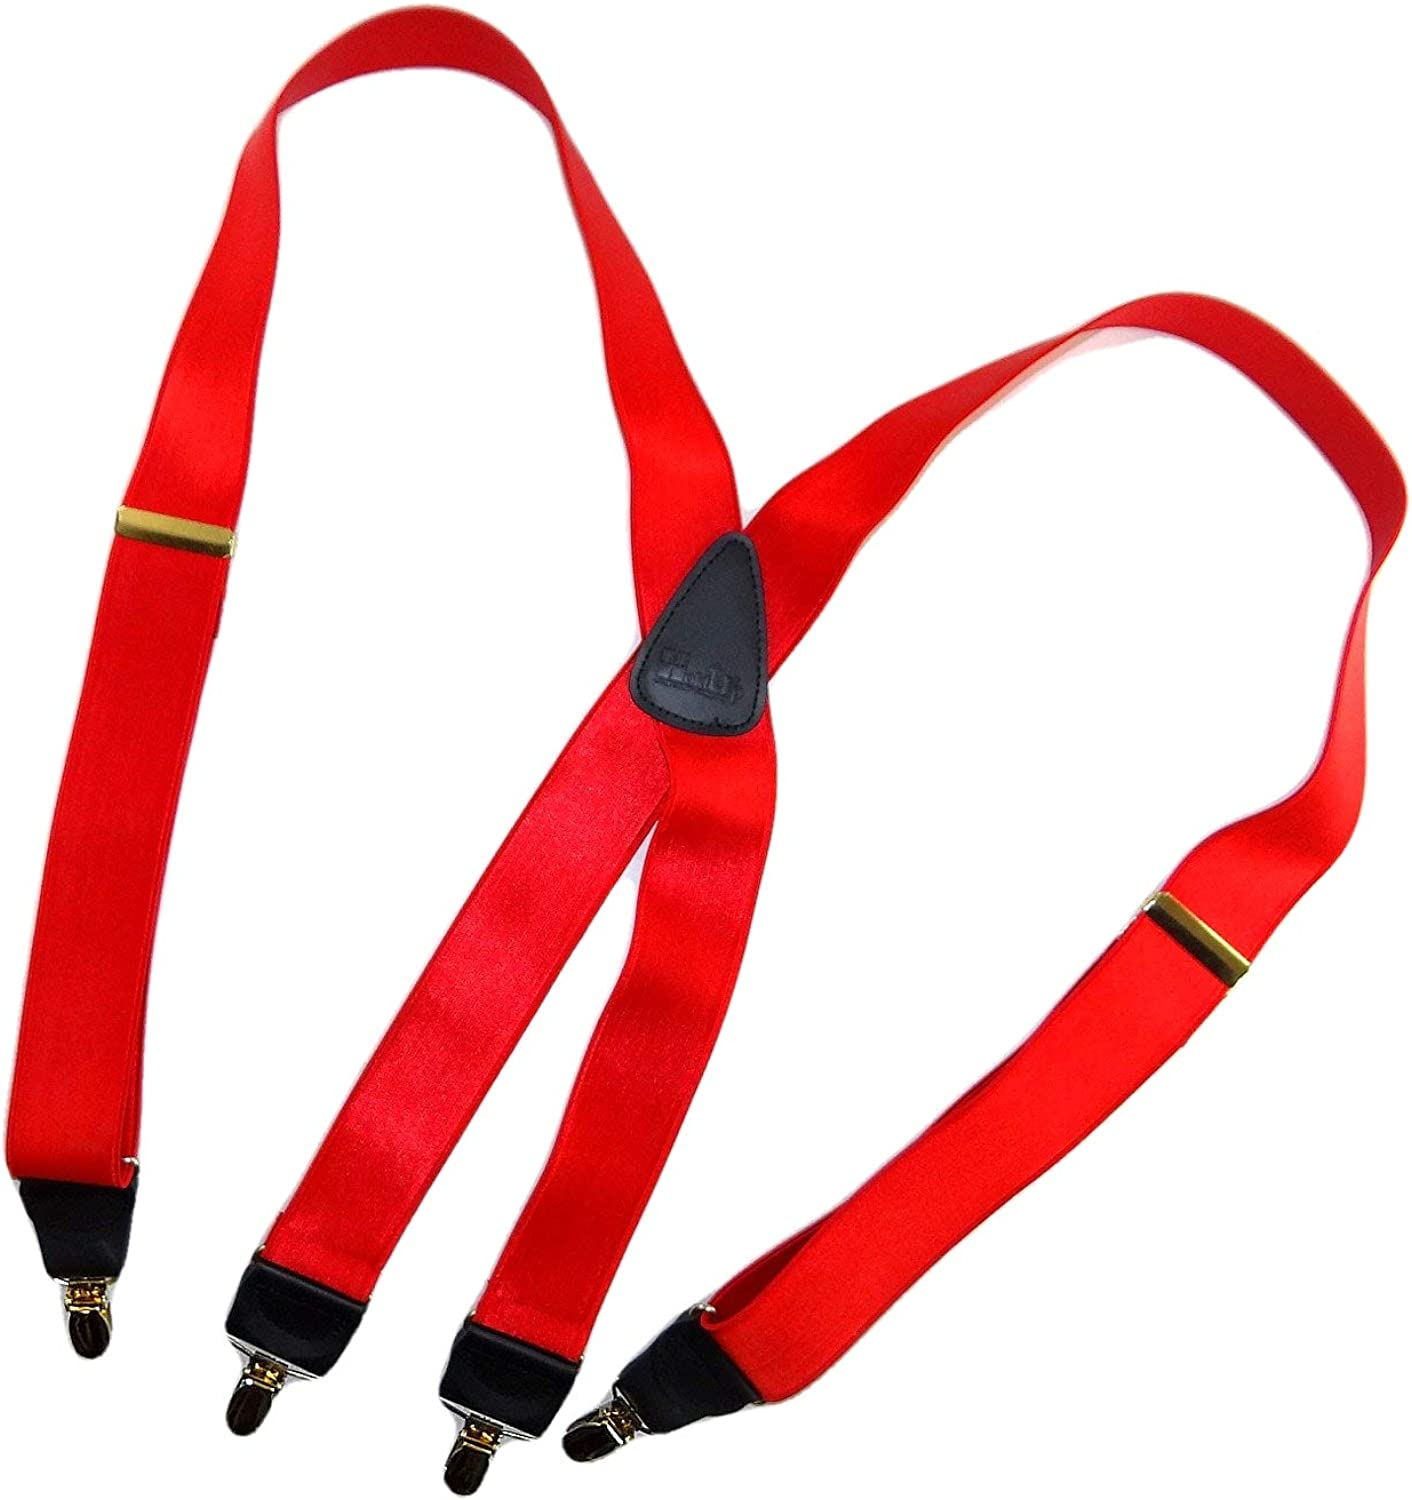 Holdup Corporate Series Regal Red X-back satin finished Suspender with Gold-tone No-slip Clips